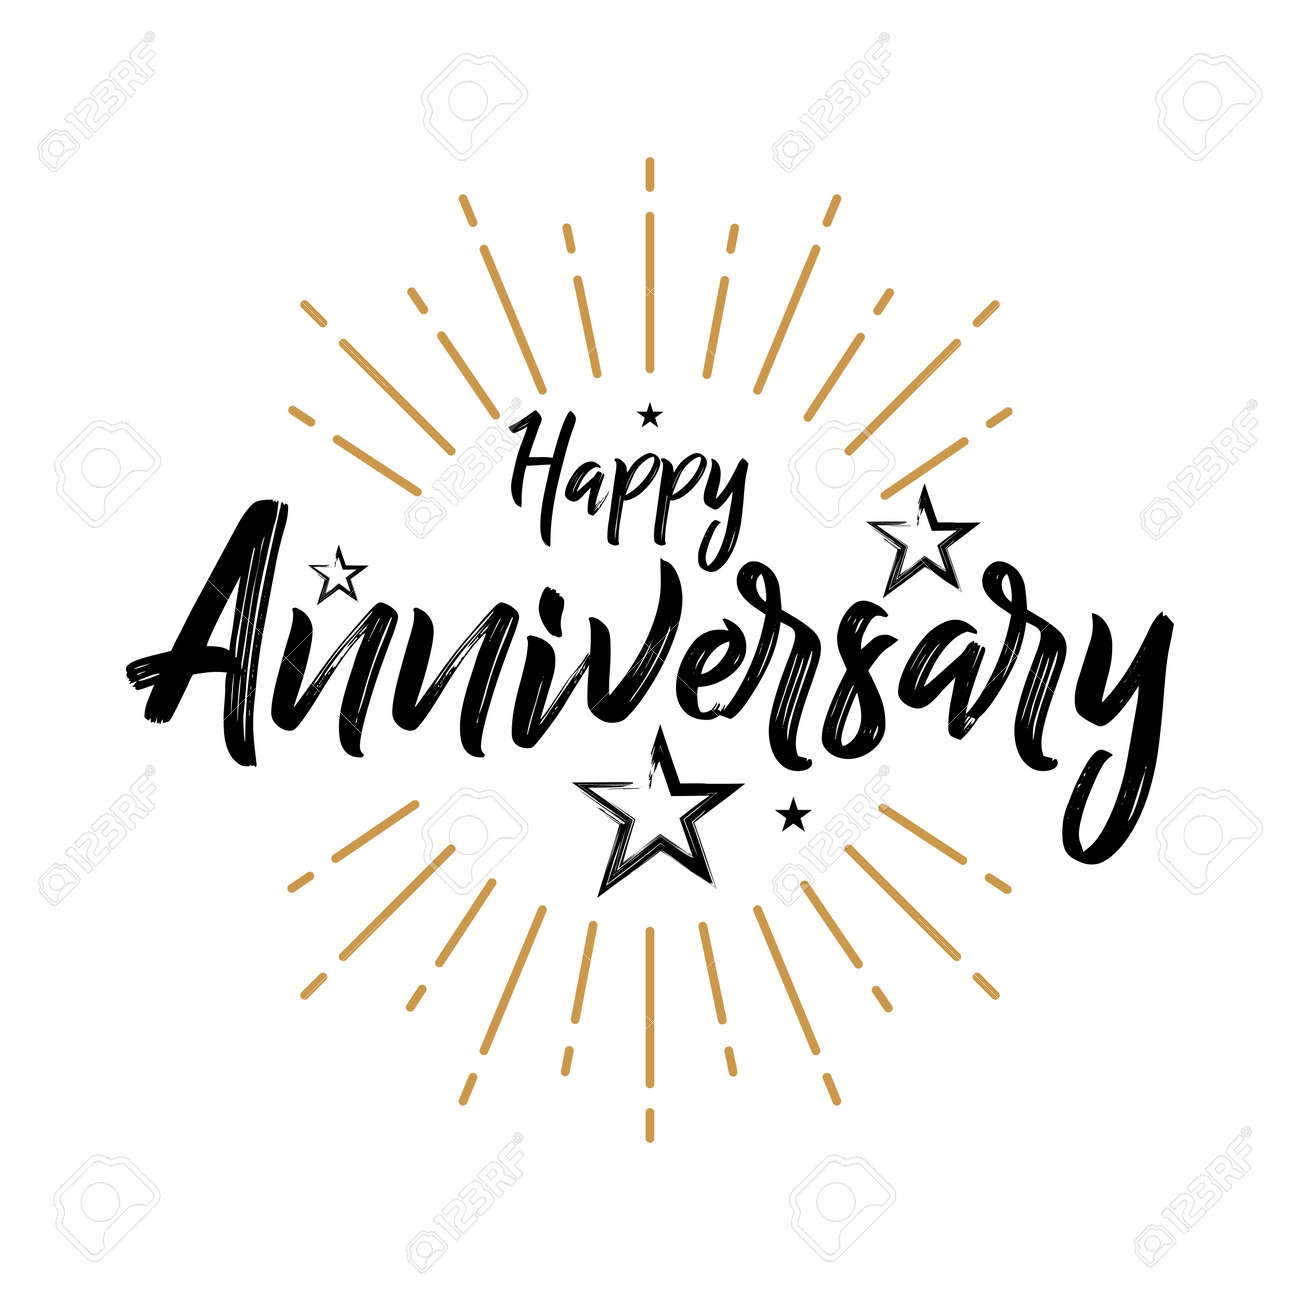 happy anniversary vintage typography grunge handwritten vector illustration brush pen lettering